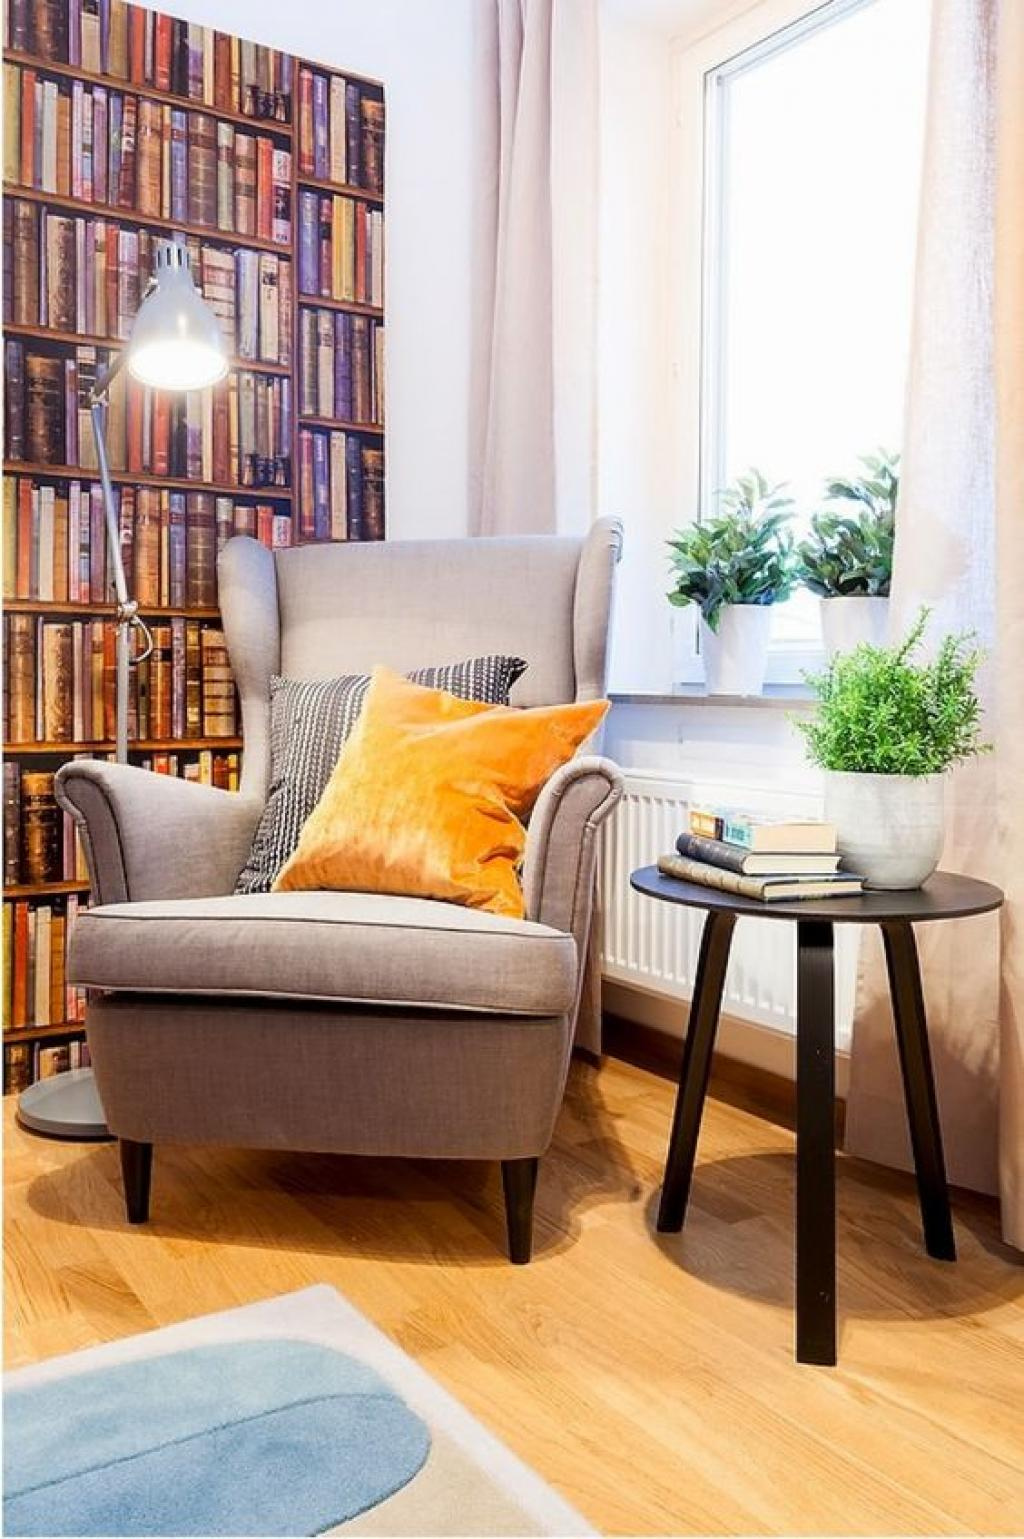 Classic Corner Wing Reading Chair